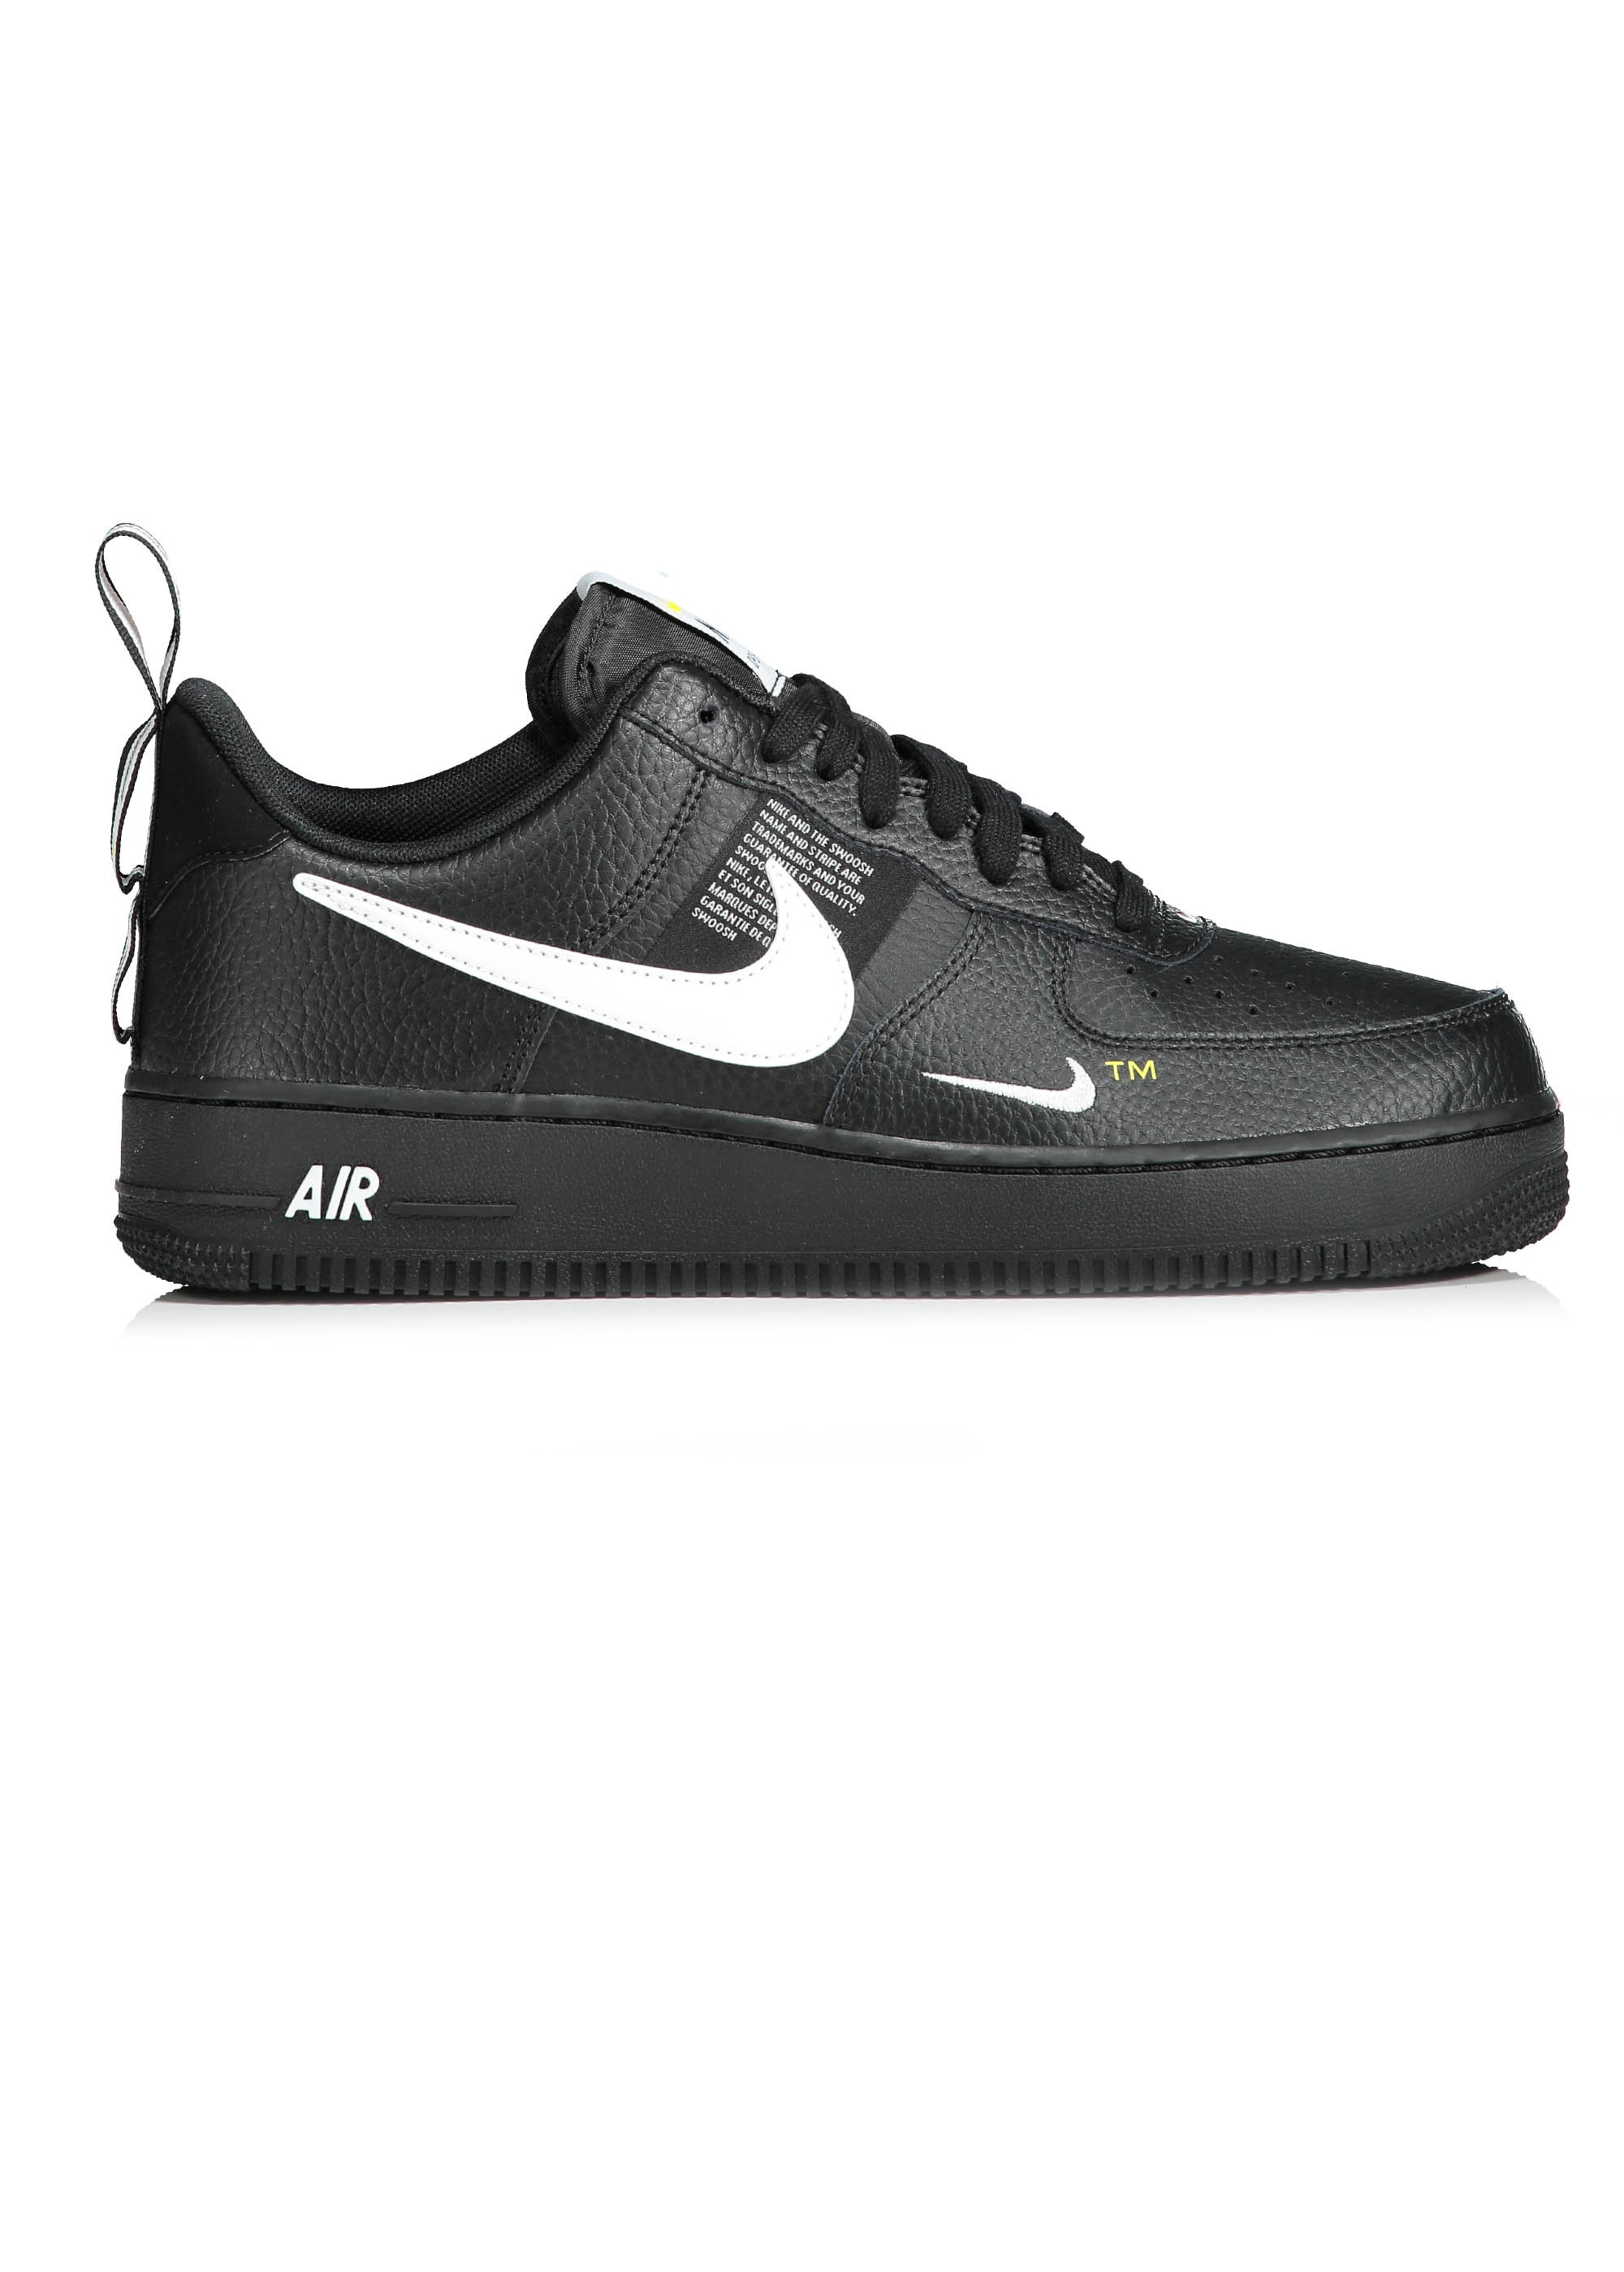 Nike Footwear Air Force 1 07 LV8 Utility Black White